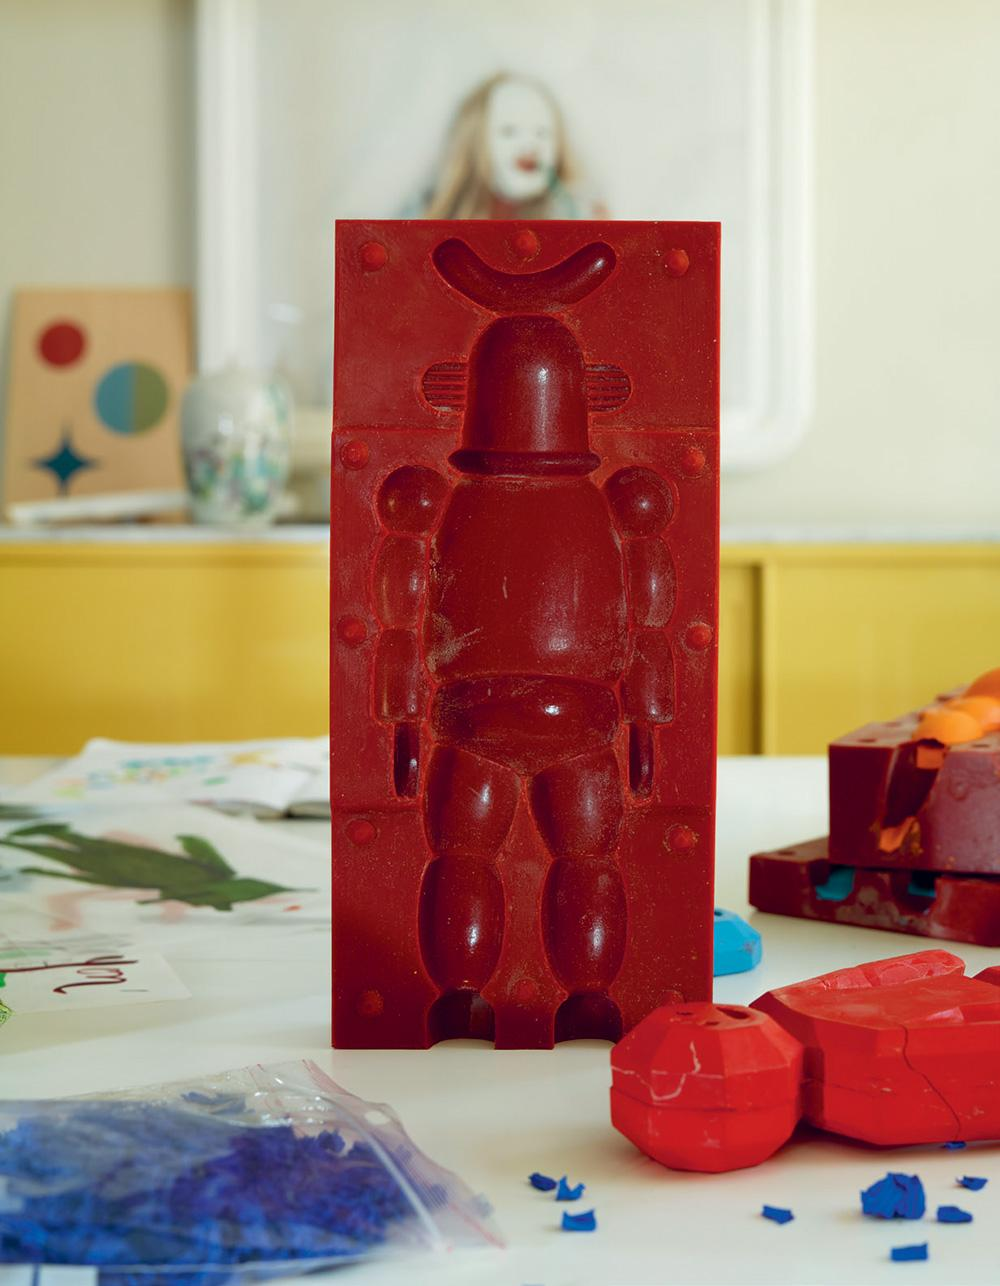 Drawing Collectible Toys moulds by Jaime Hayon and Caran d'Ache